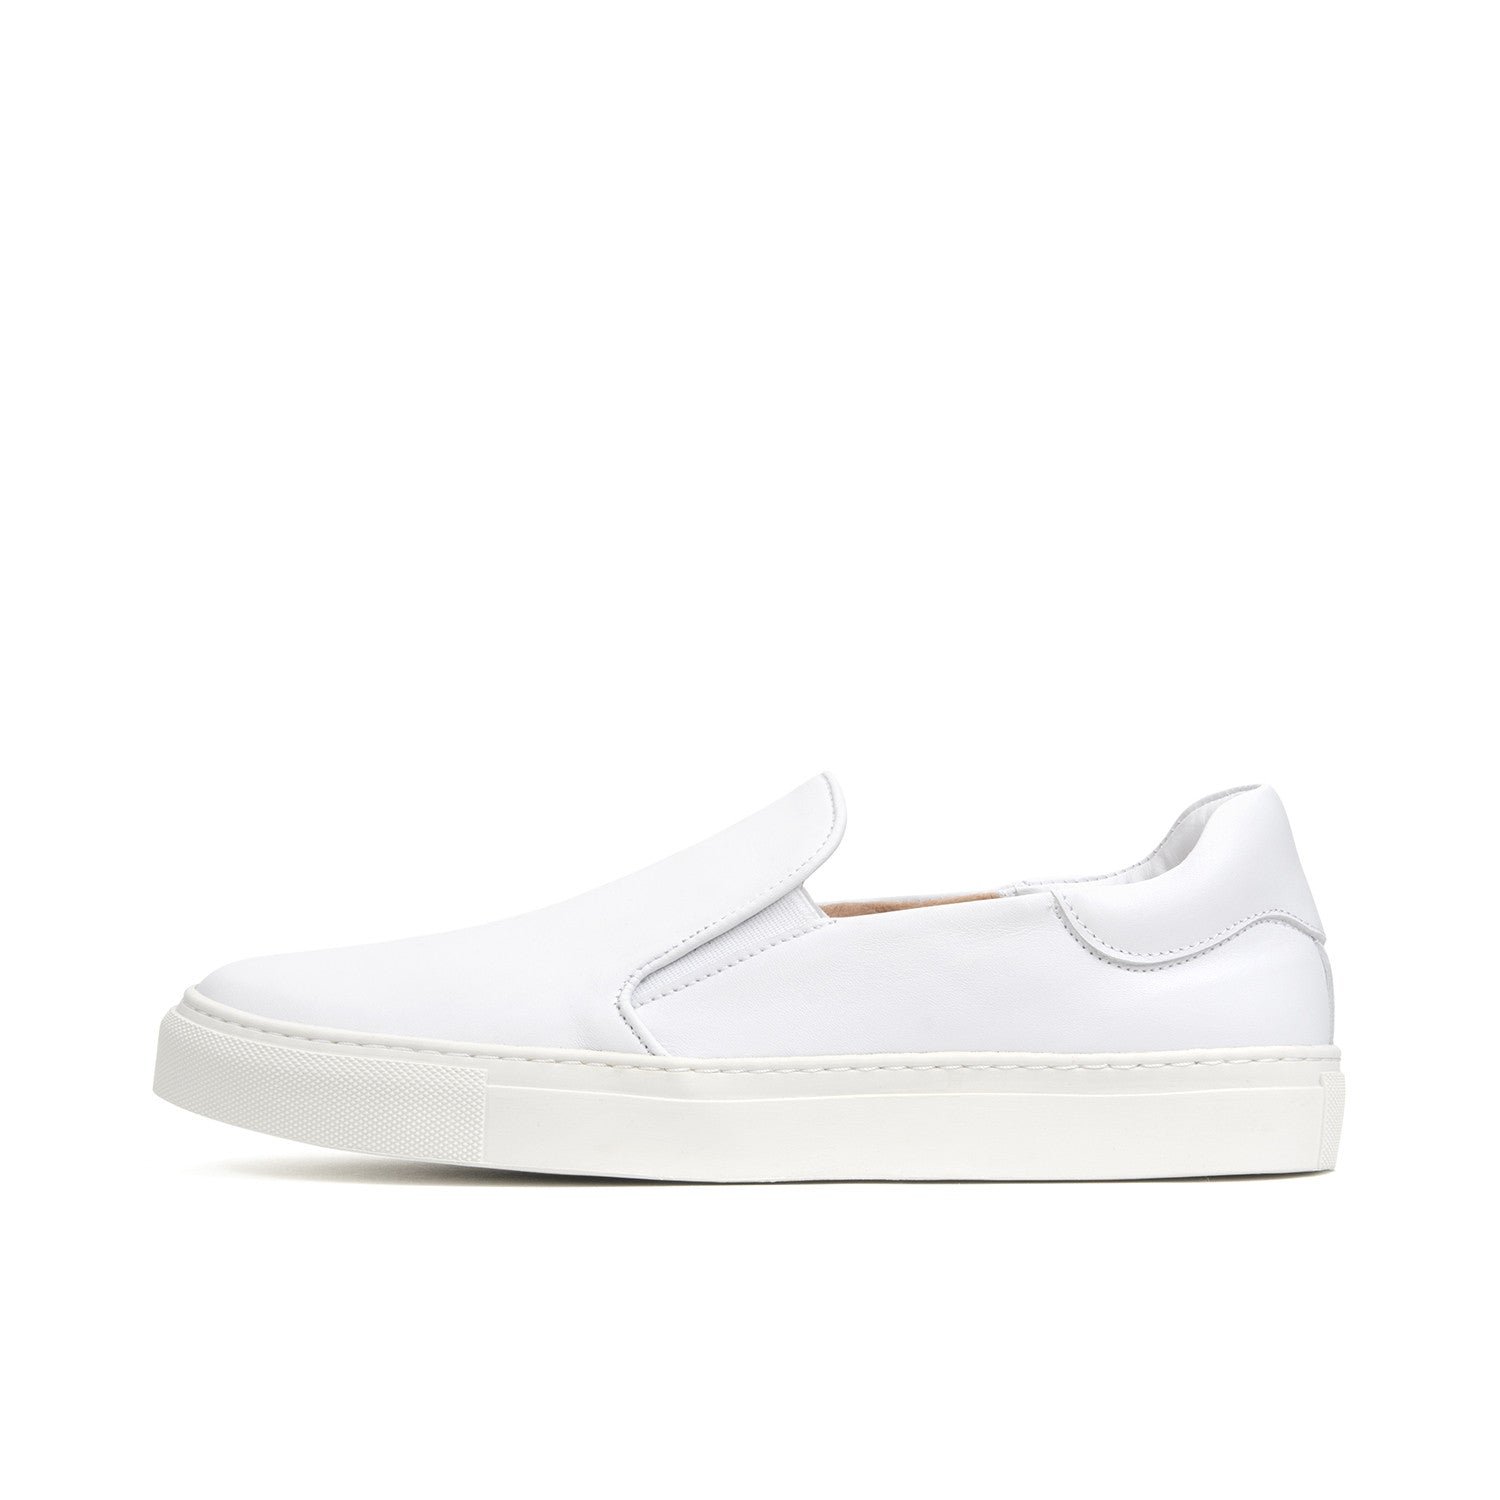 Soulland Dog Leather Slip On Shoe White - Concrete